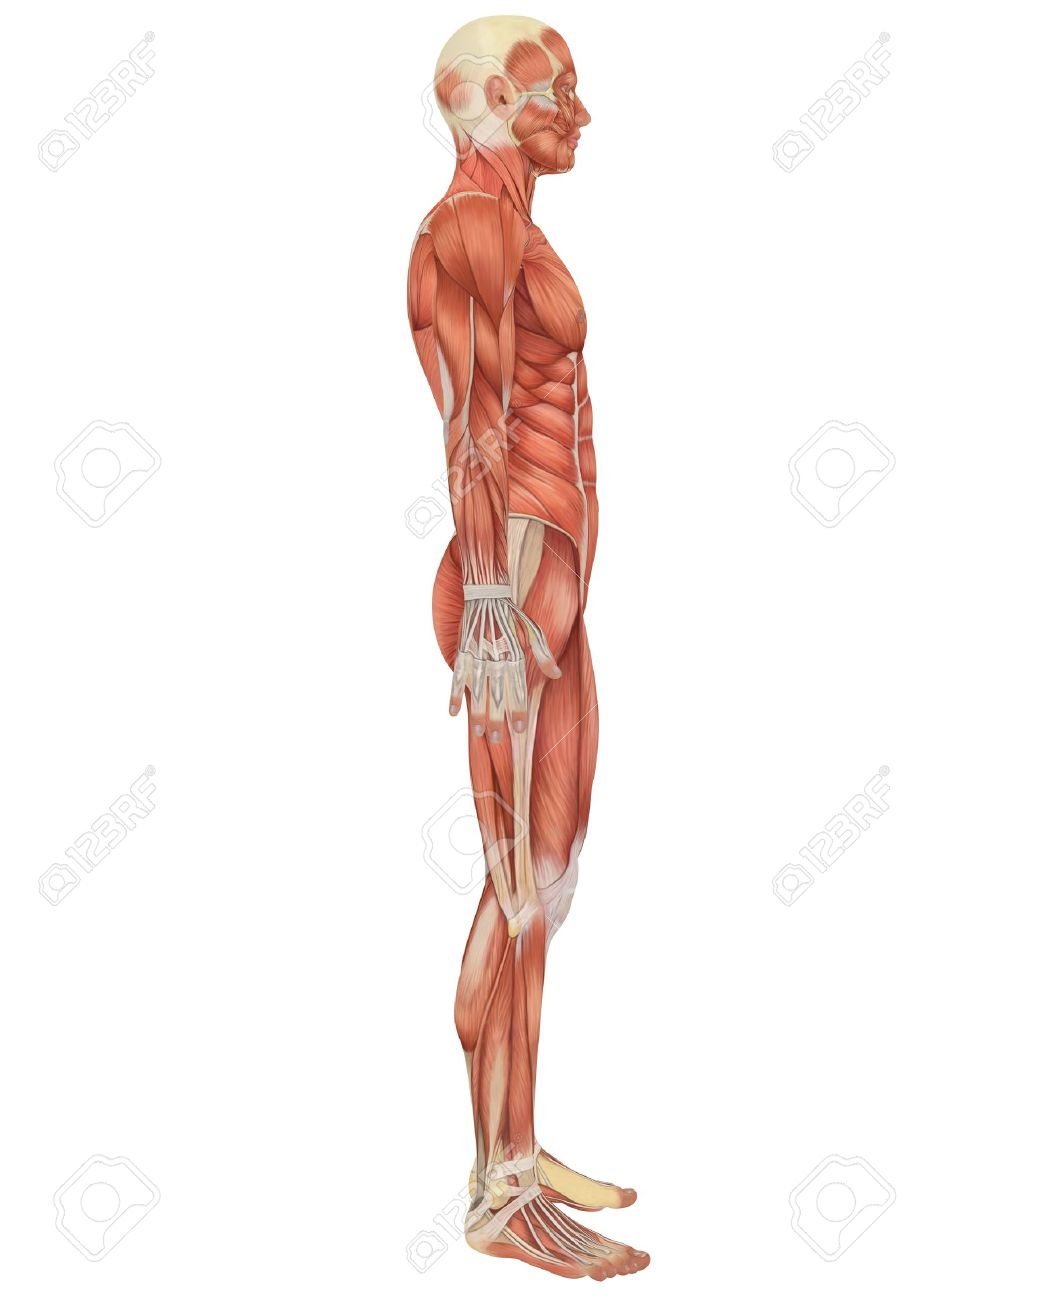 A illustration of the side view of the male muscular anatomy. Very educational and detailed. - 10474824